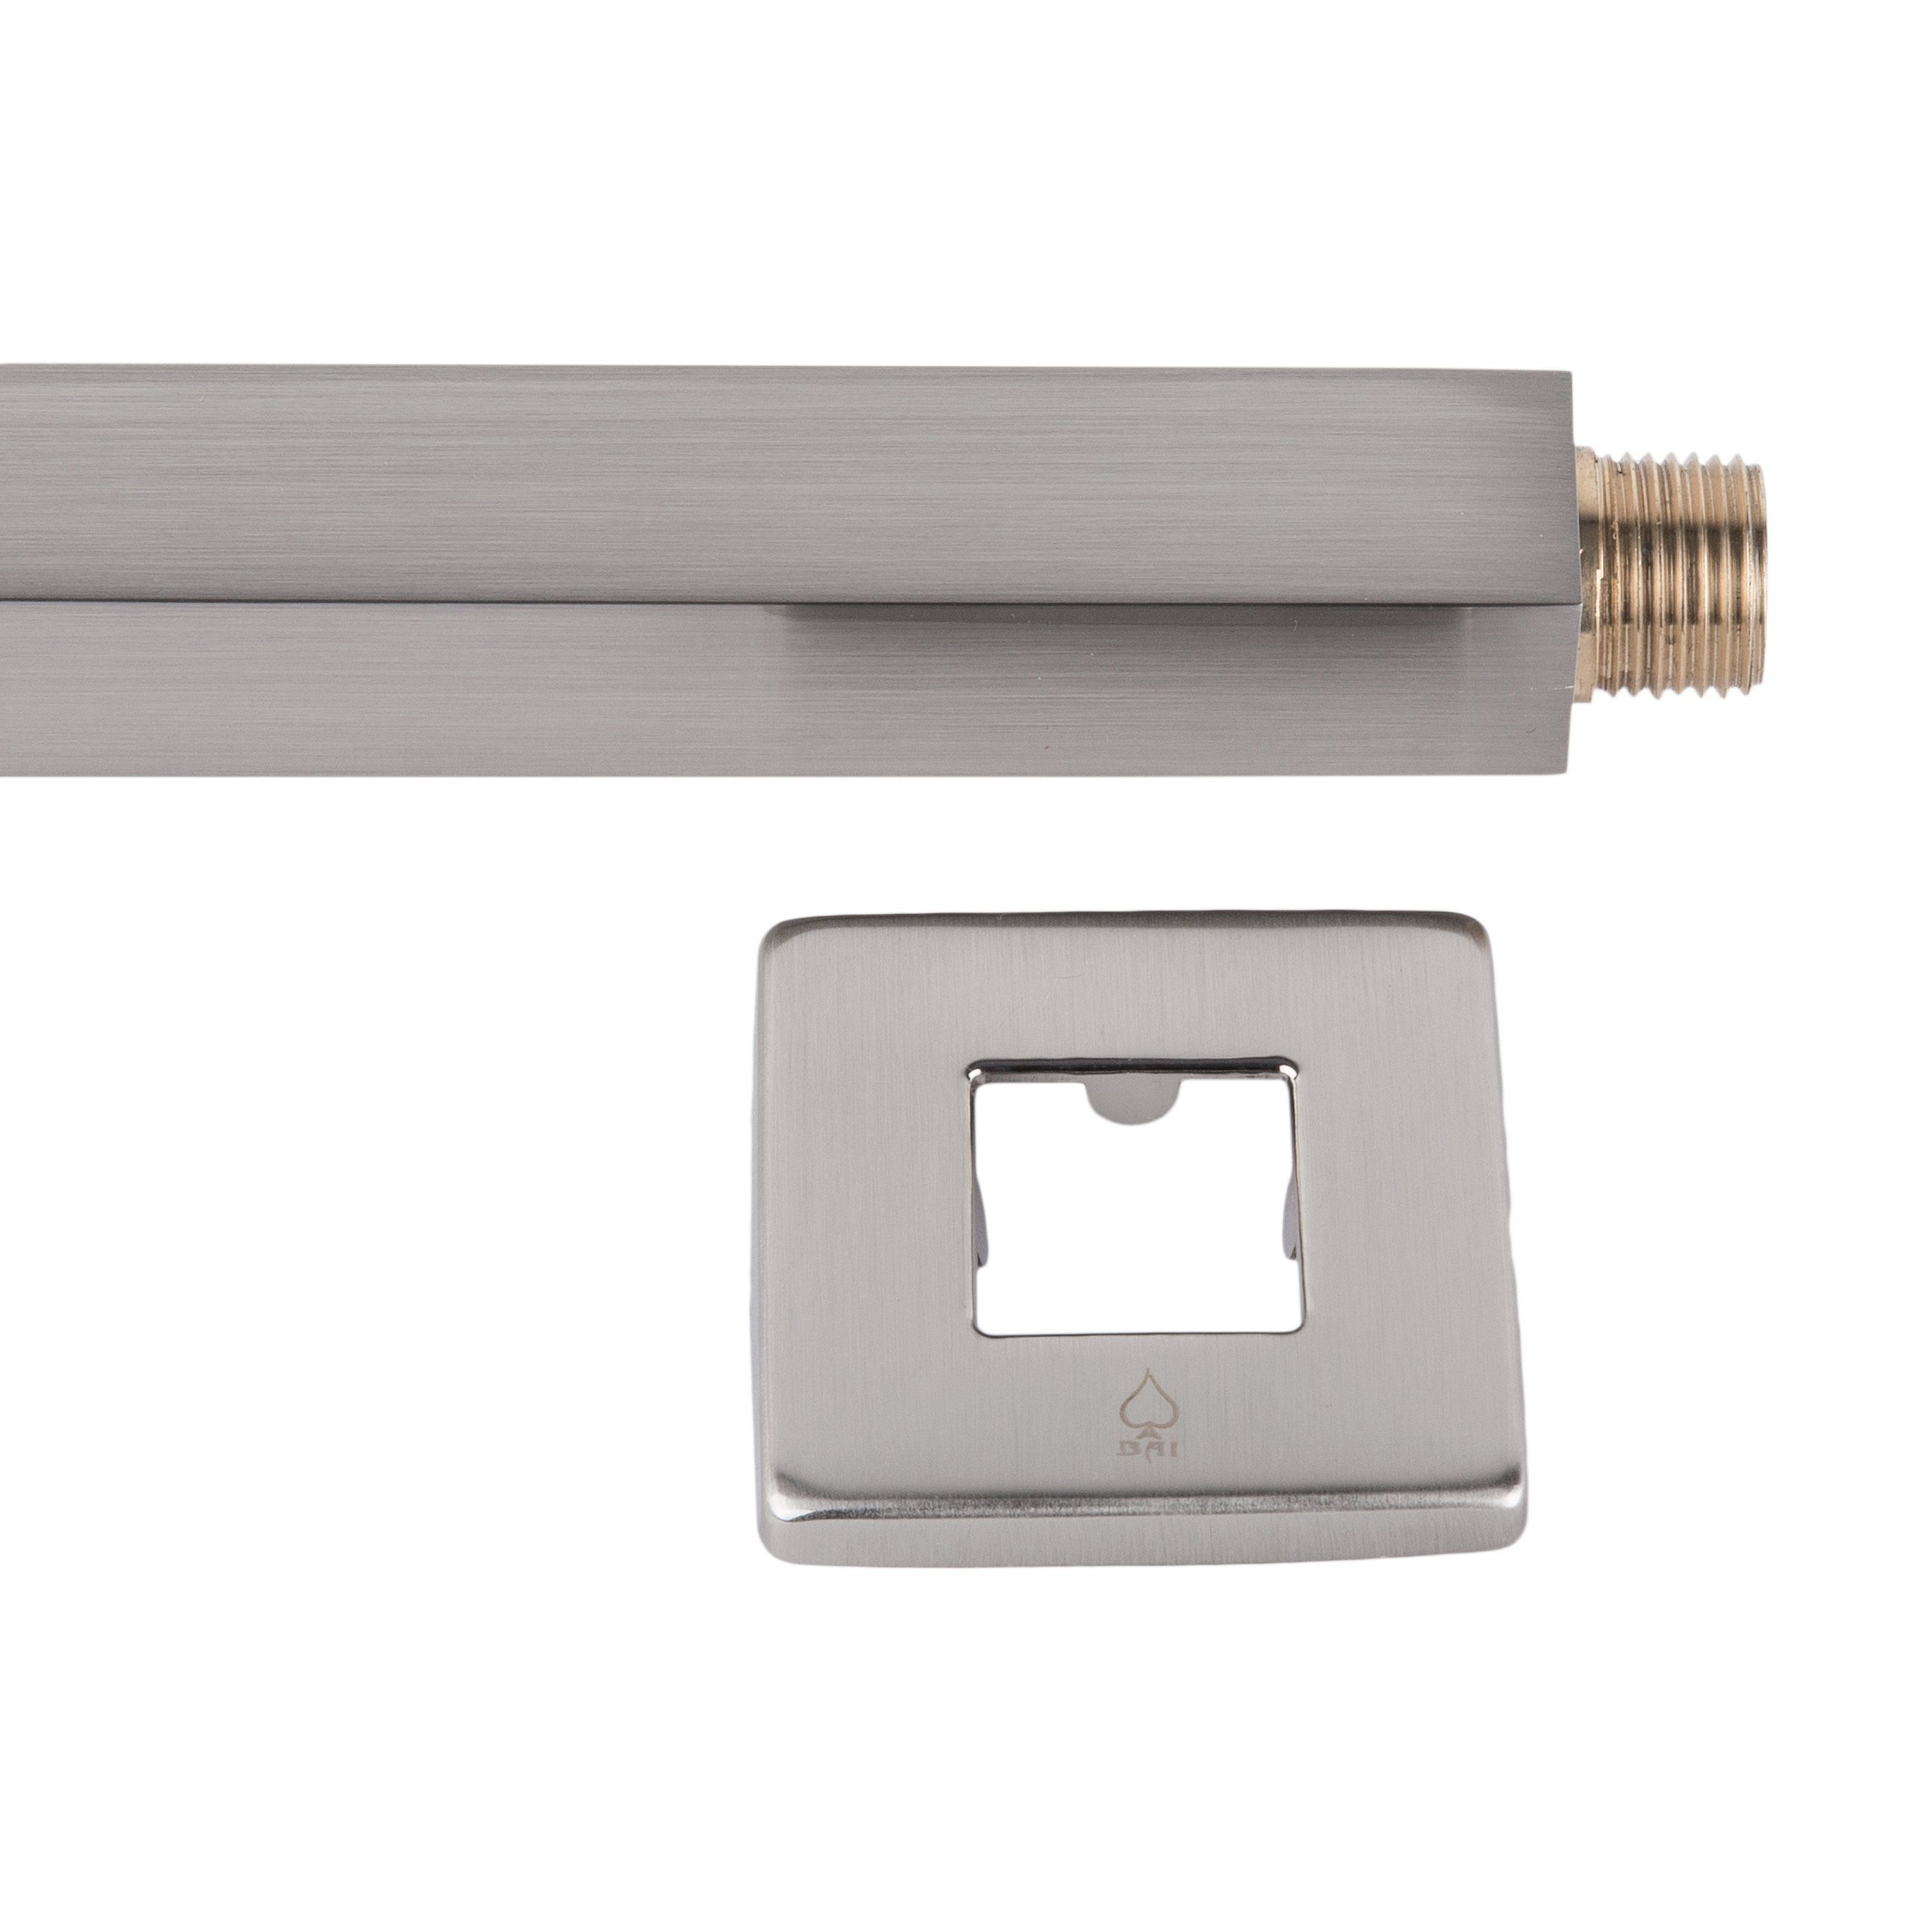 Bai 0448 Ceiling Mounted 14 Inch Shower Head Arm In Brushed Nickel